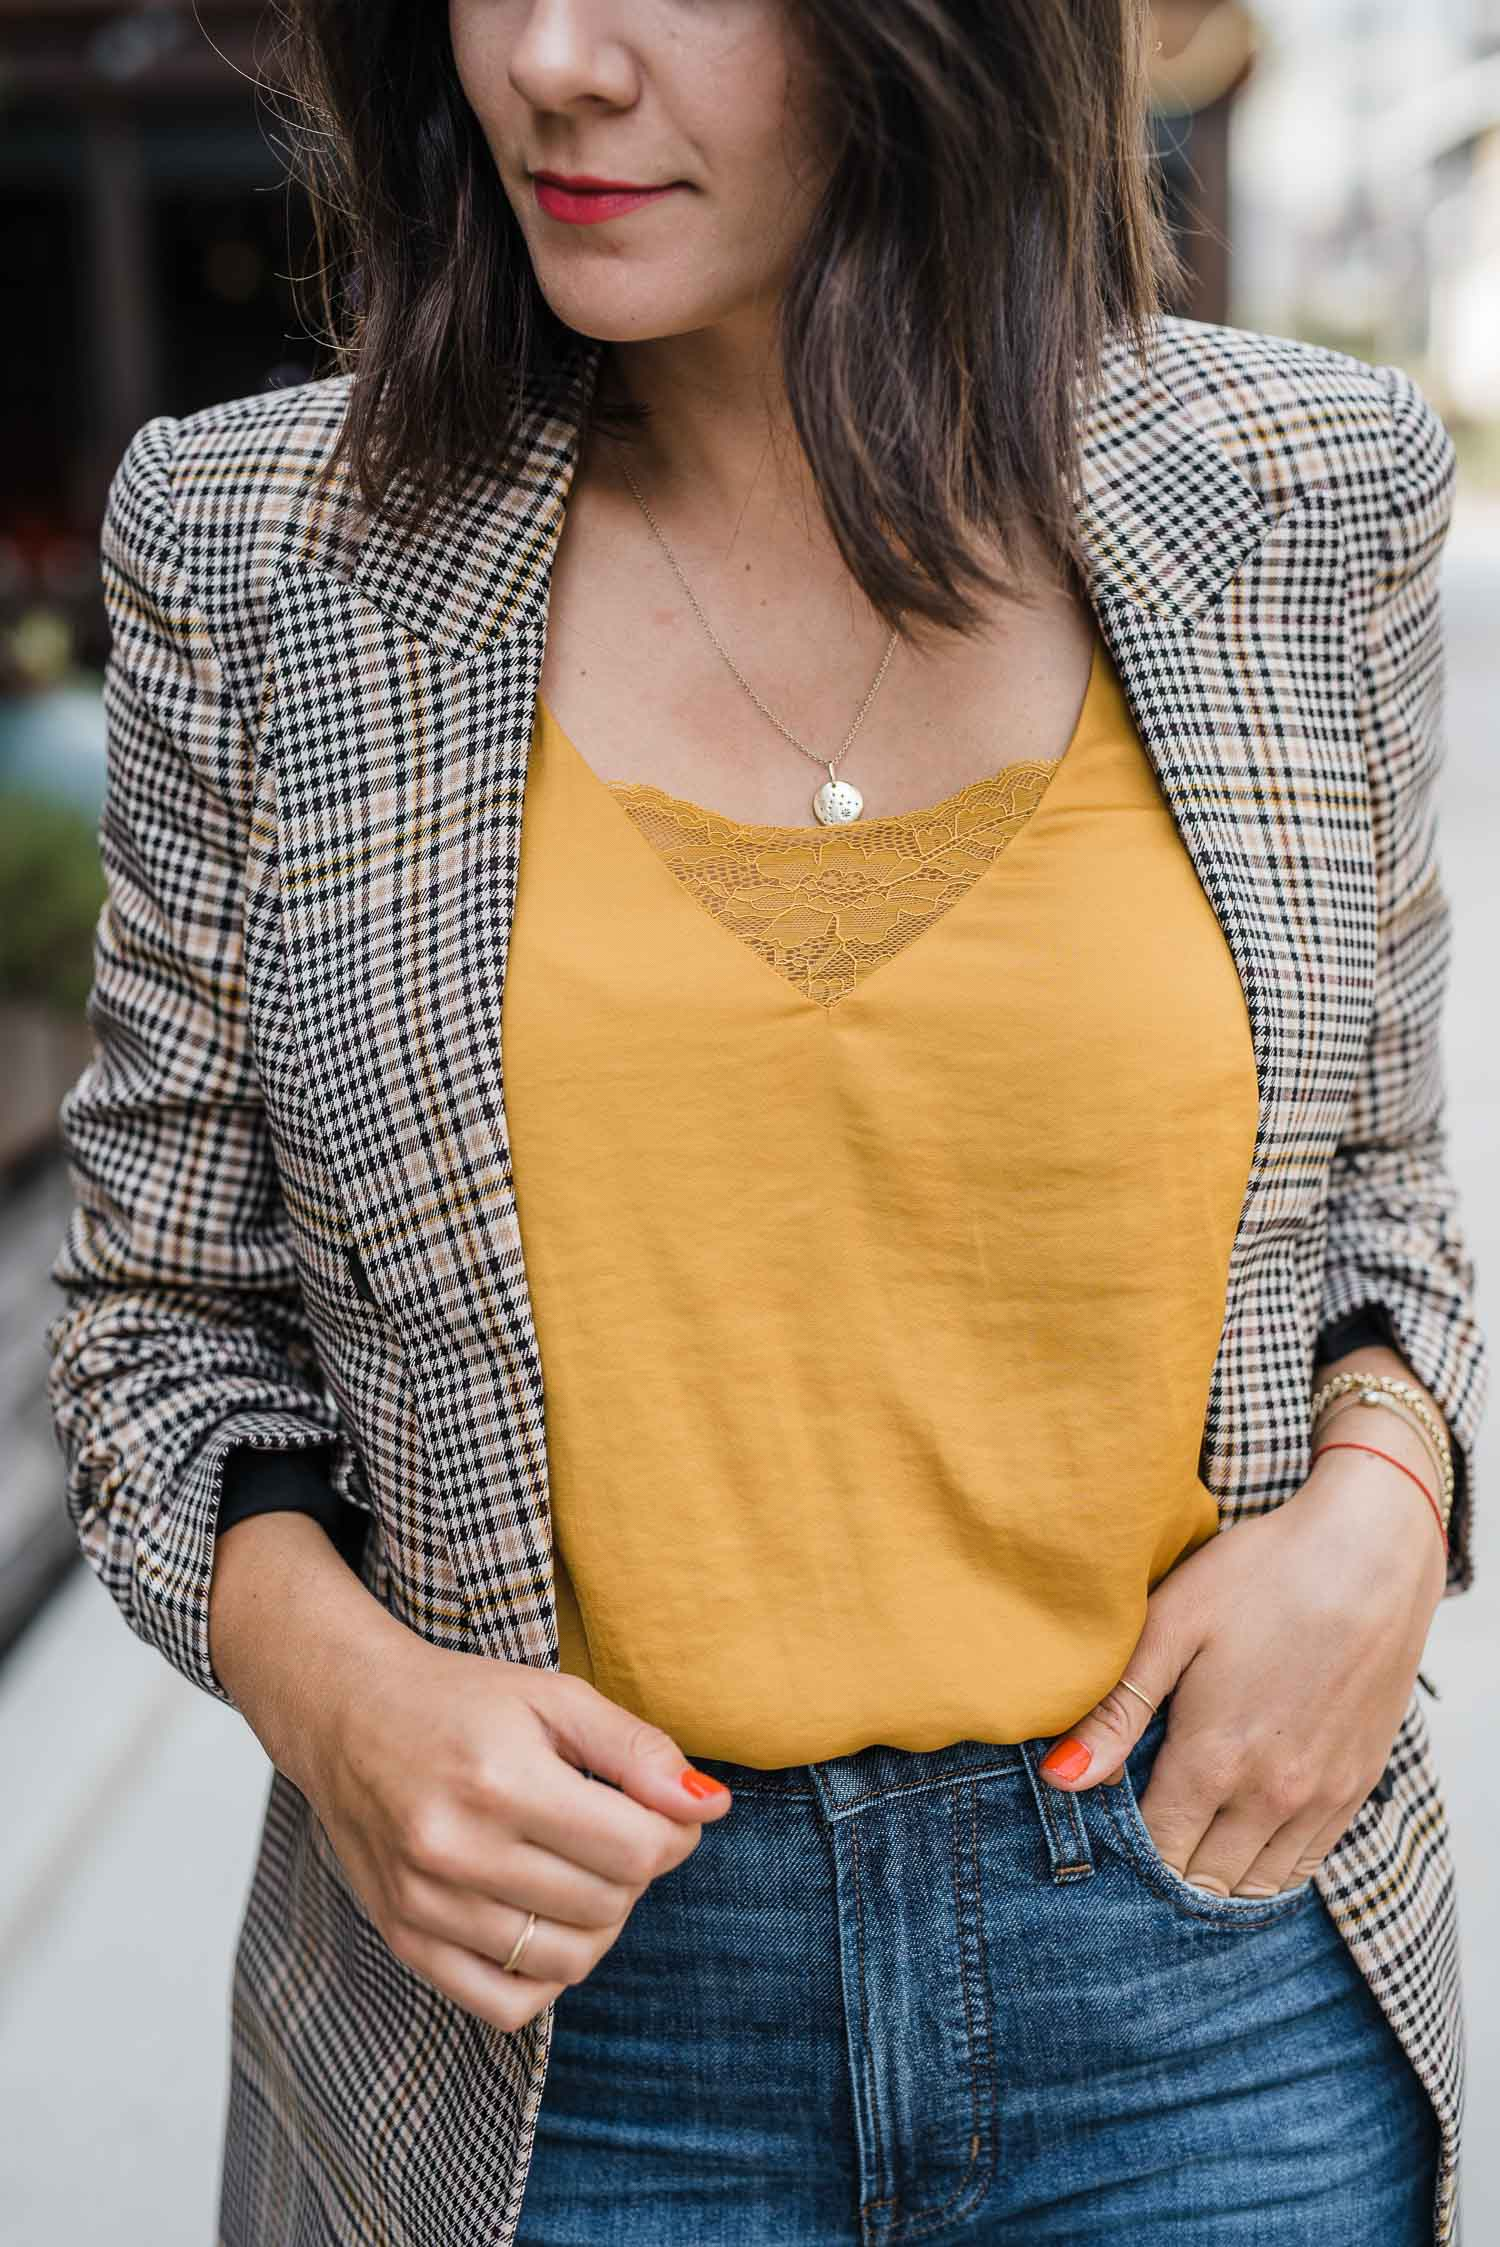 Details in dress help you transition to the fall season